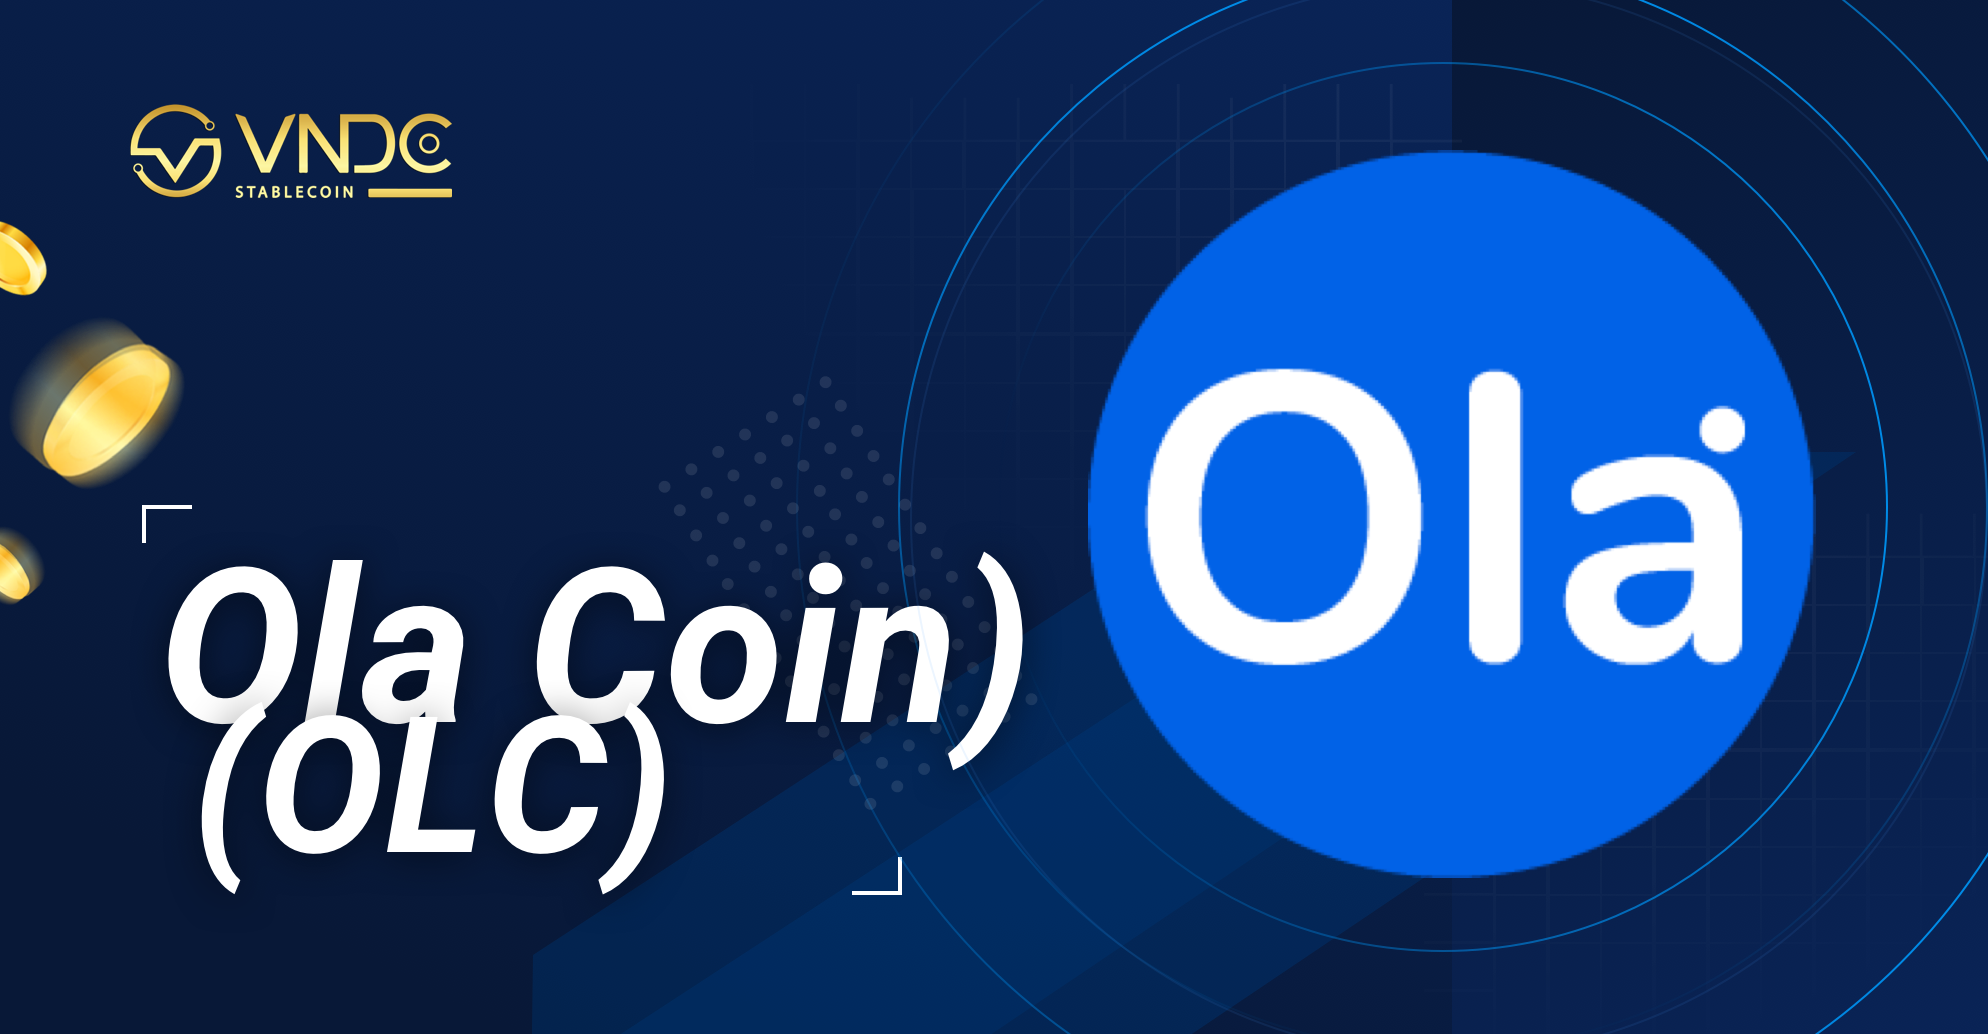 OLC (Ola Coin) is officially listed on VNDC Exchange